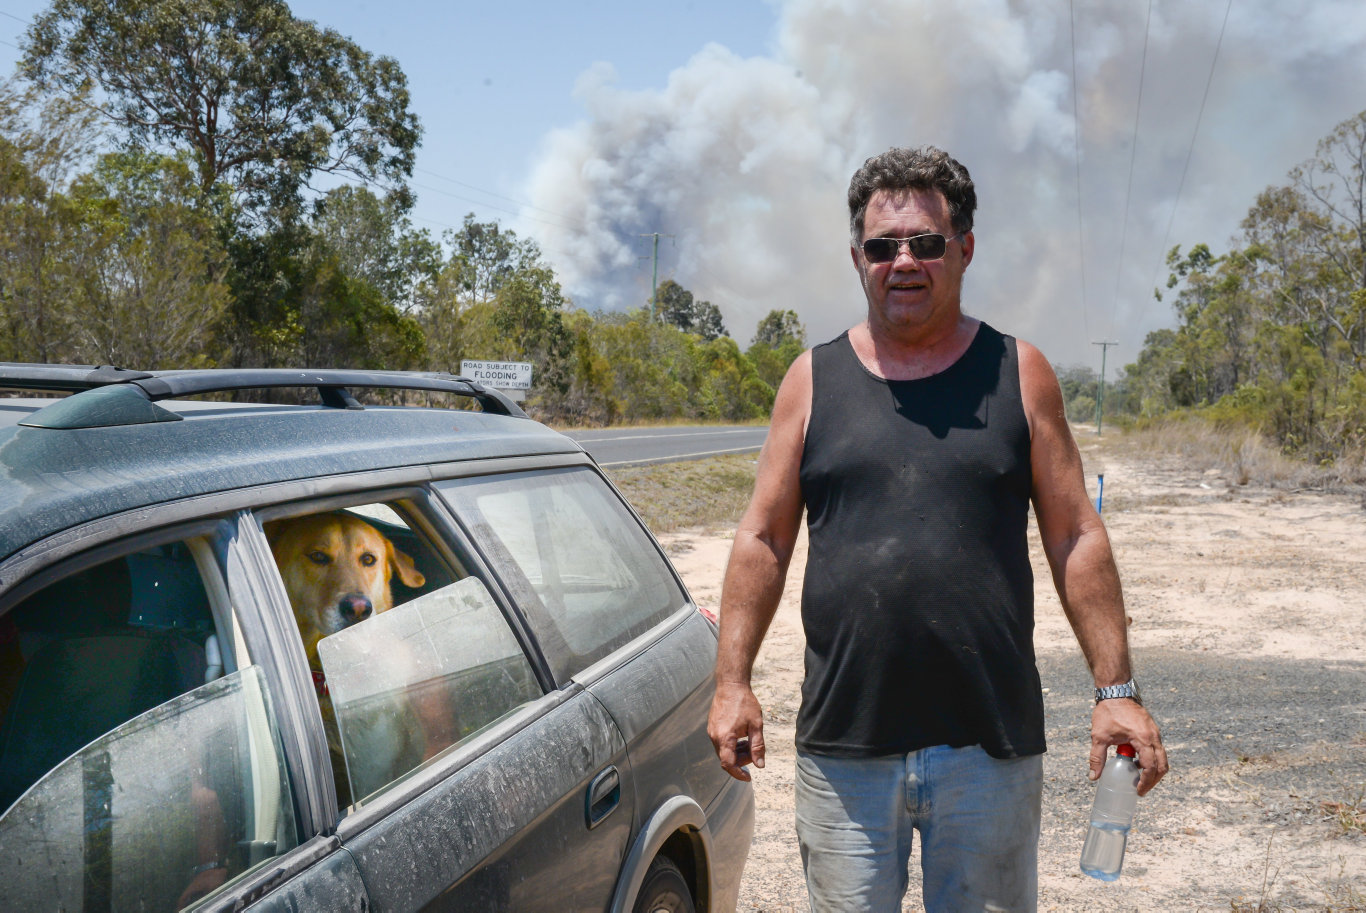 David Grant left his camp site as soon as he saw thick black smoke approaching.